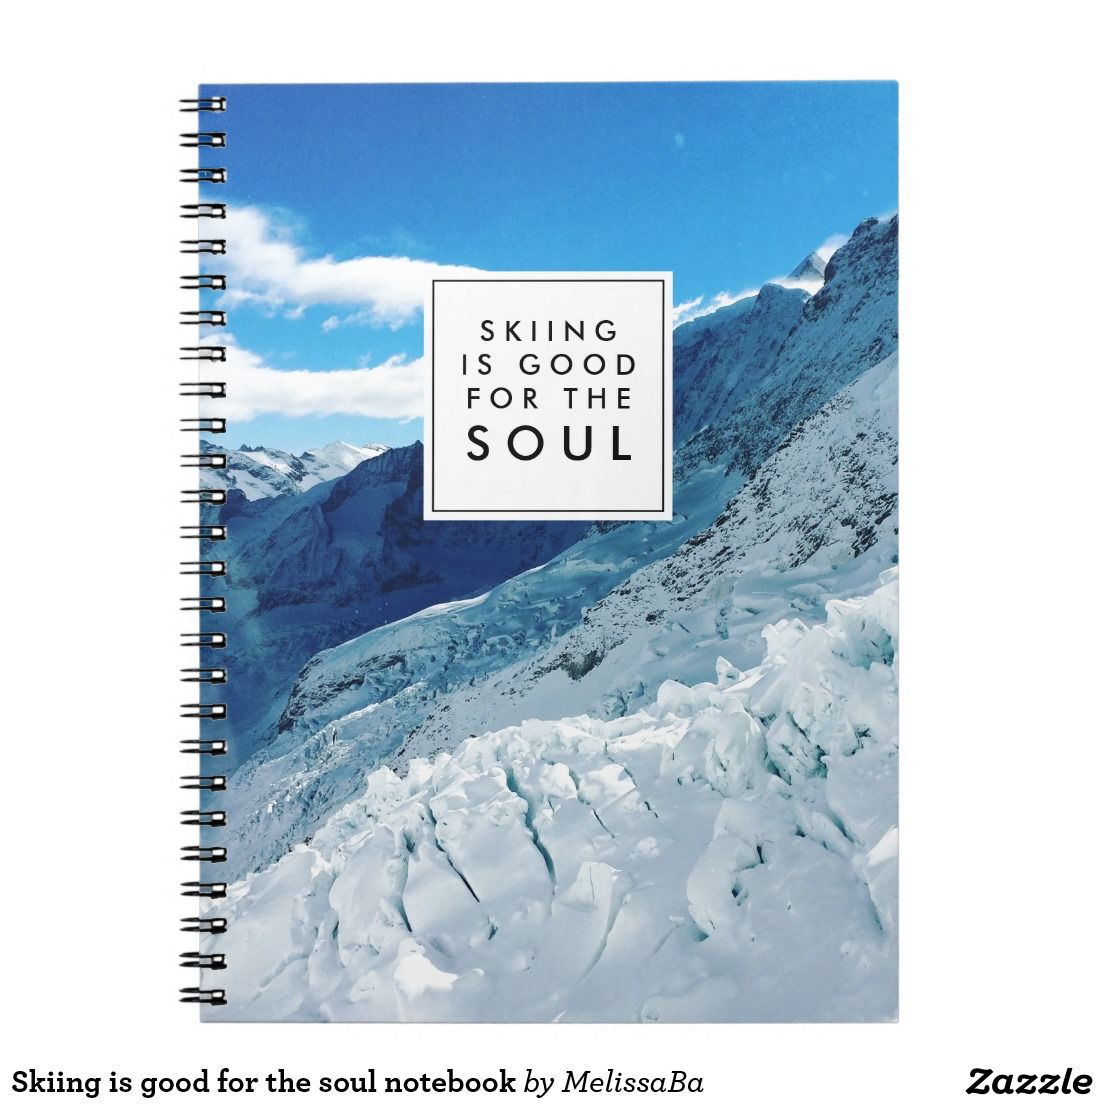 Skiing is good for the soul notebook